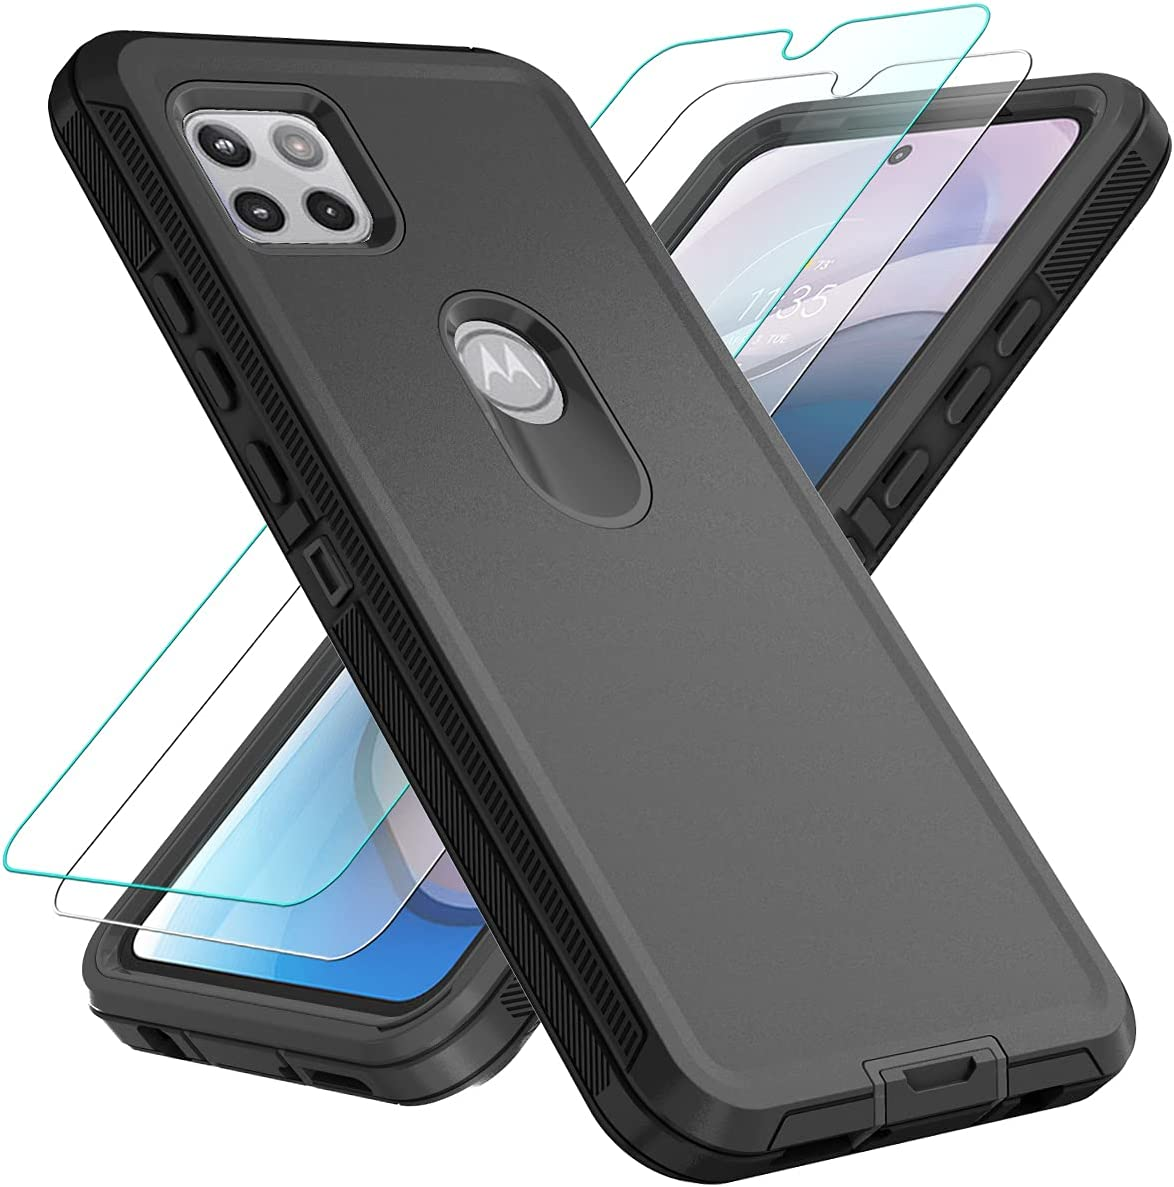 ONOLA Compatible with Moto One 5G Ace Case,Moto One 5G Ace Phone Case with Tempered Glass Screen Protector + HD Screen Protector (2 Pack),3 in 1 Durable Case for Moto One 5G Ace (Black)